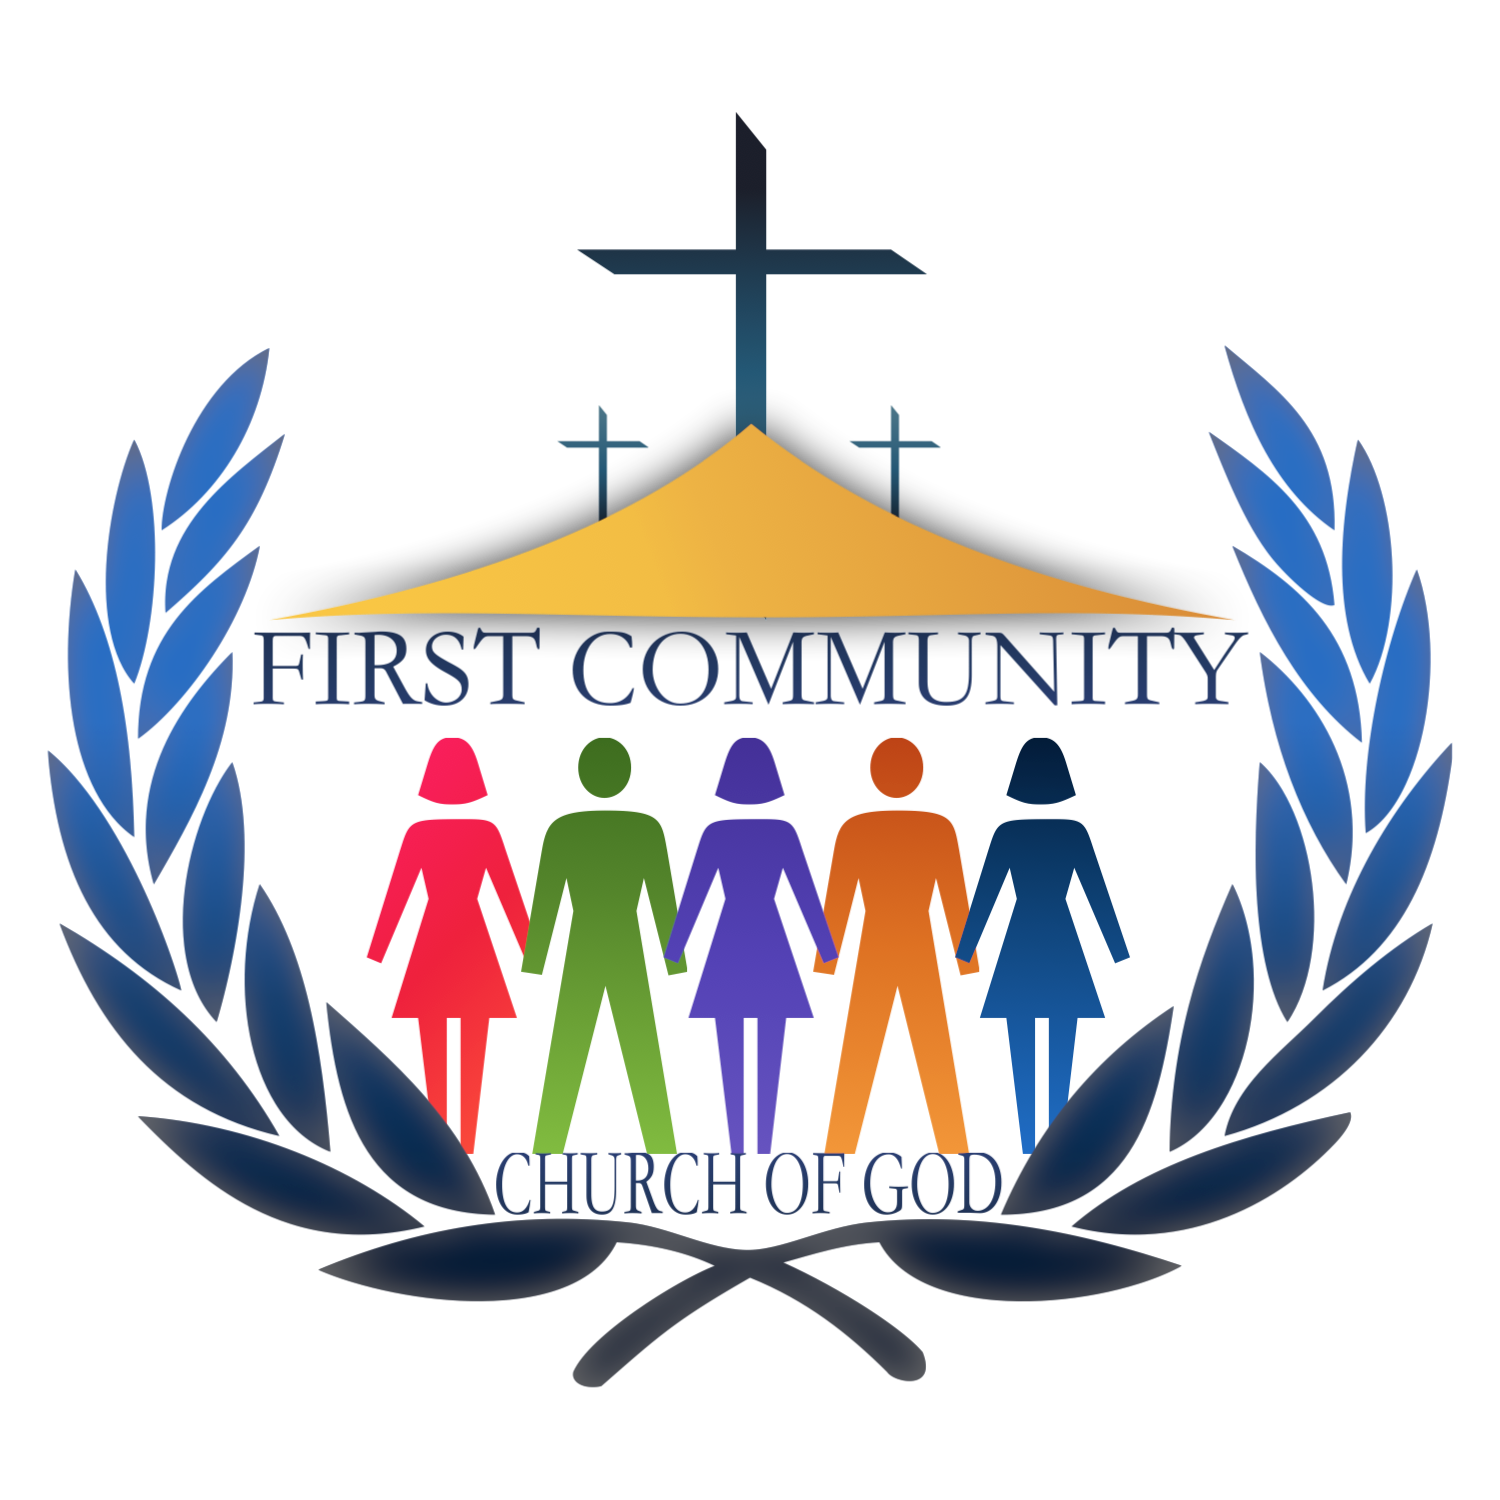 Missions clipart god. Mission statement homepage first